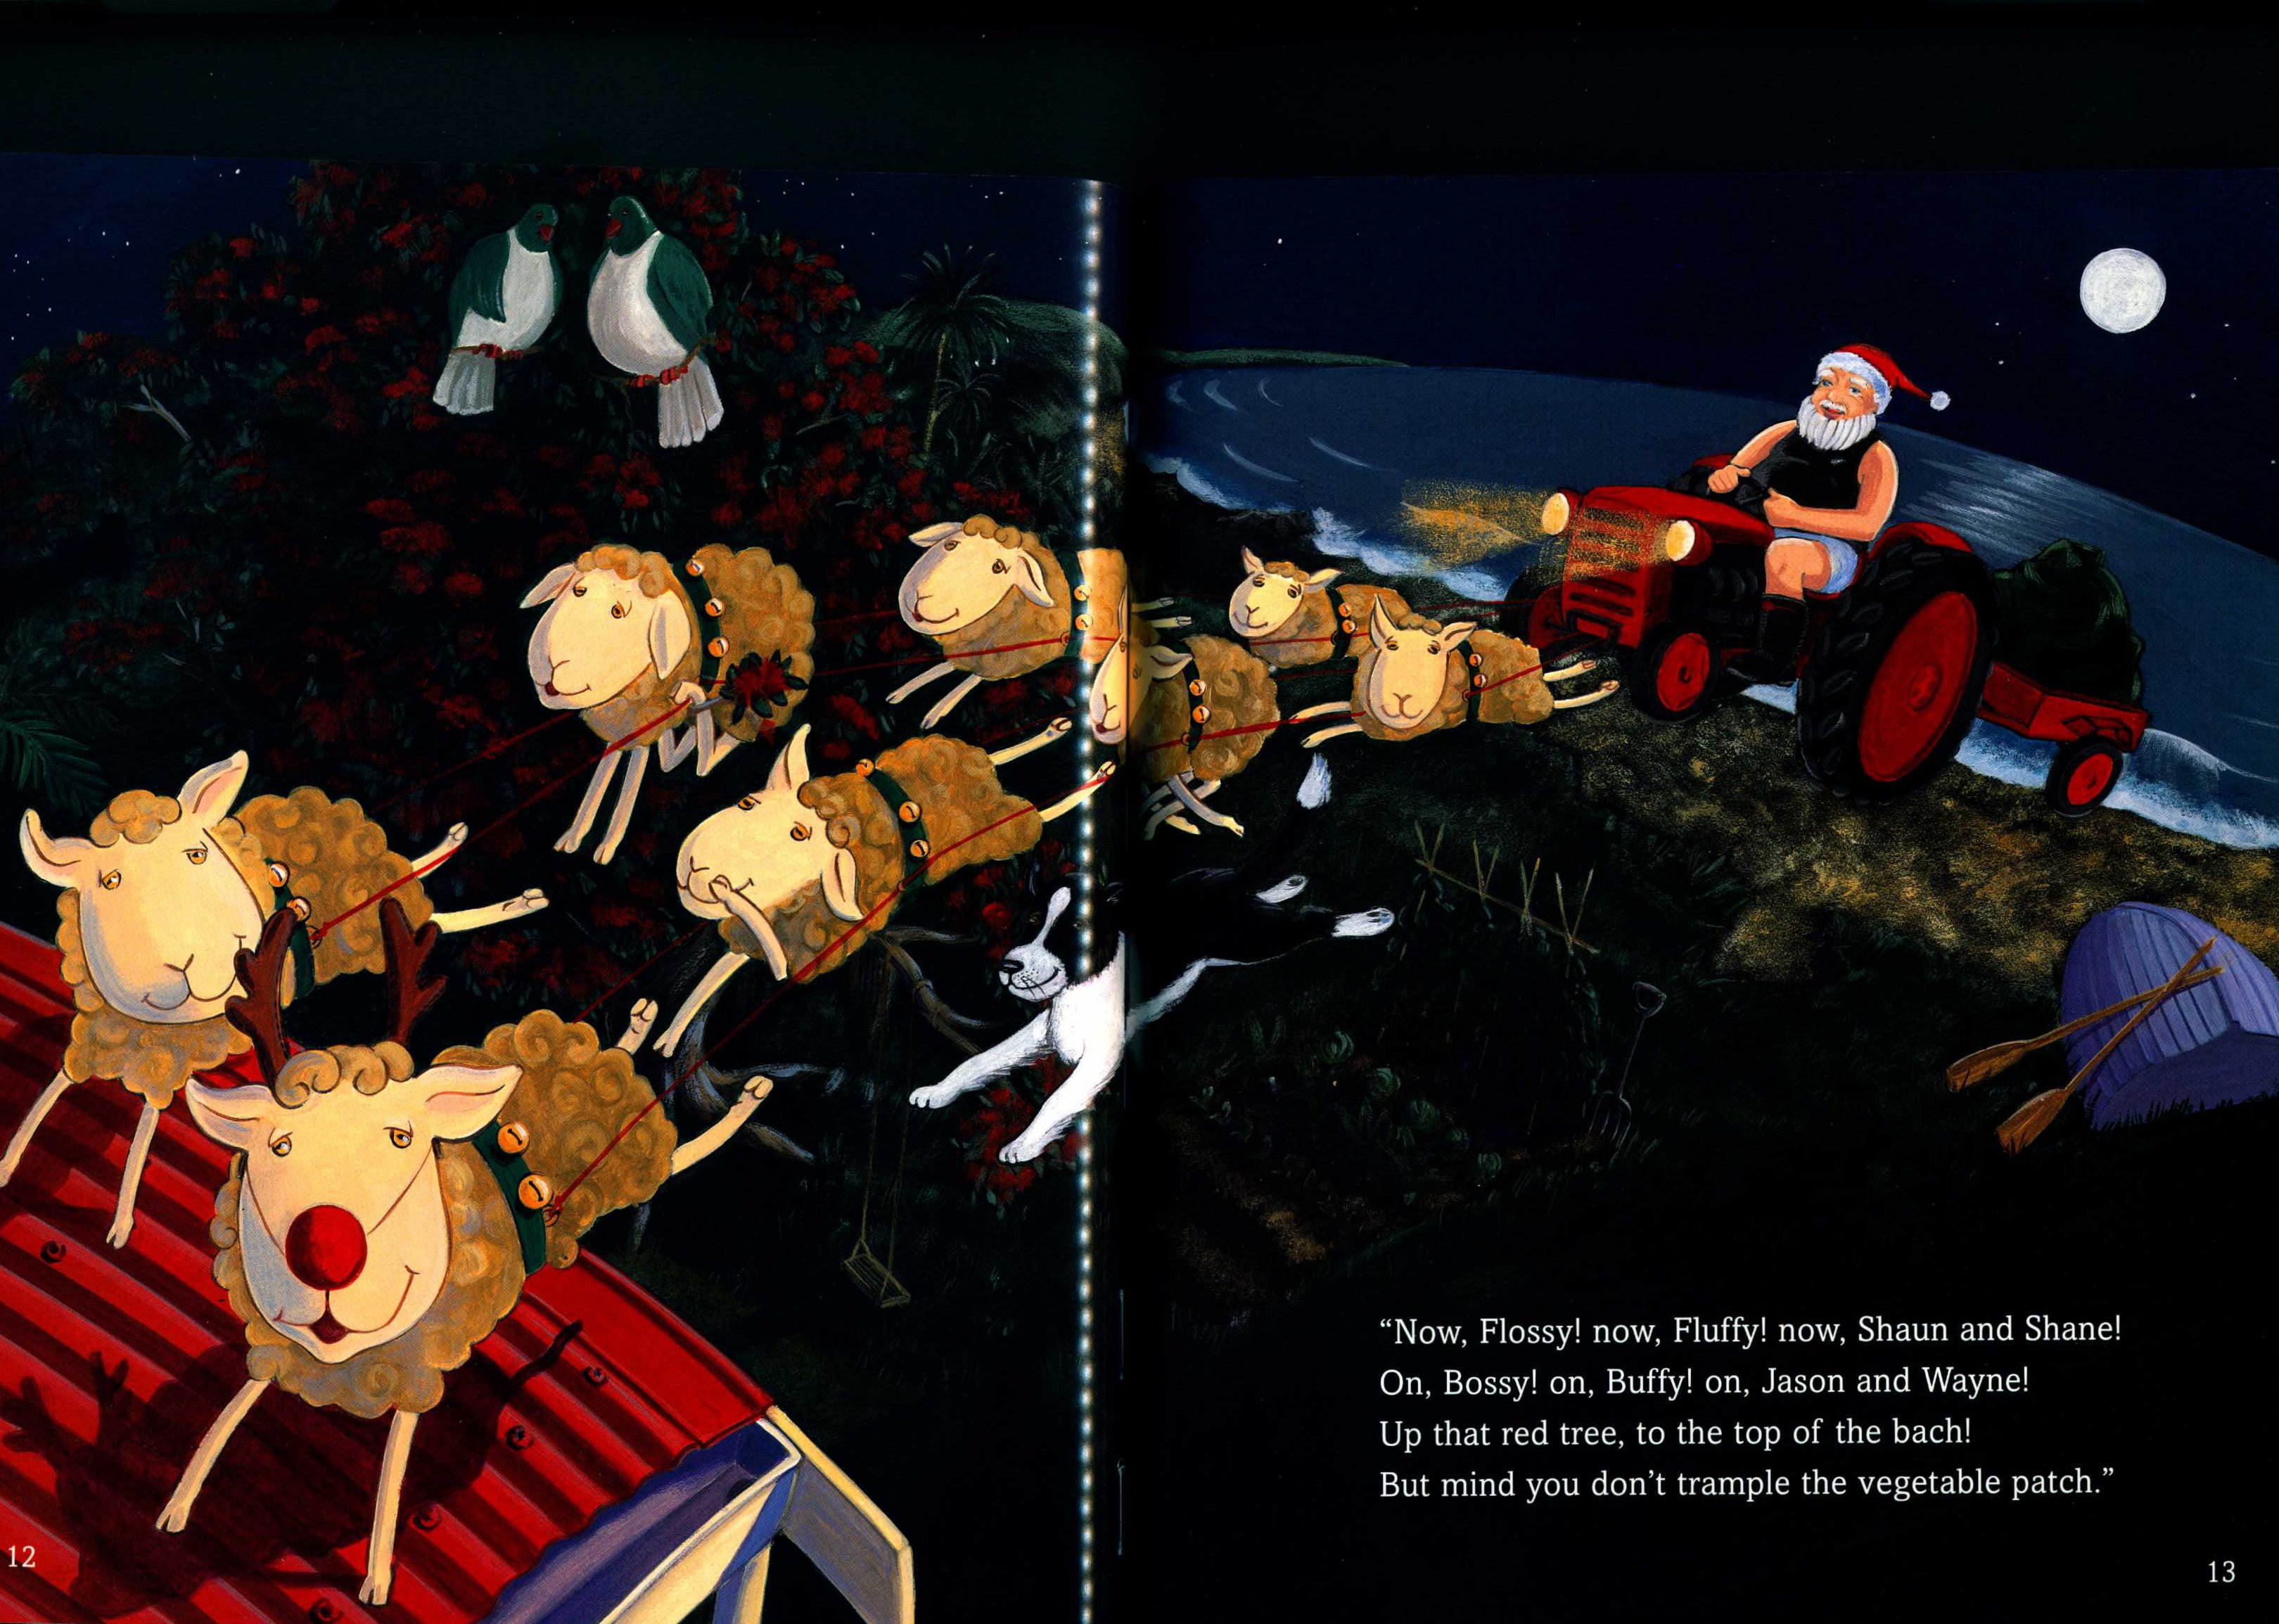 Yvonne Morrison. A kiwi night before Christmas. Auckland: Scholastic, 2003.